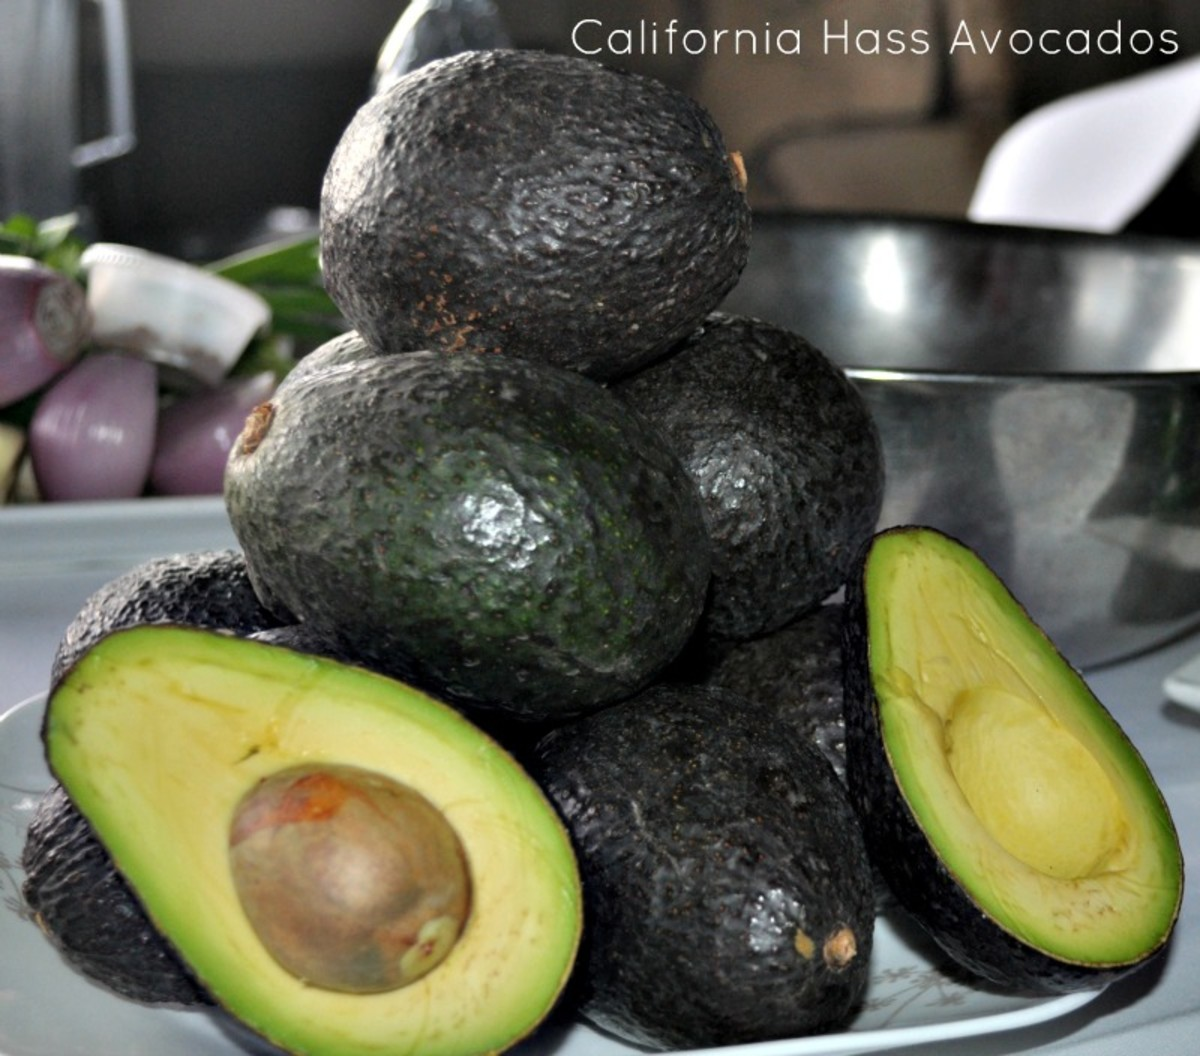 California Hass Avocados